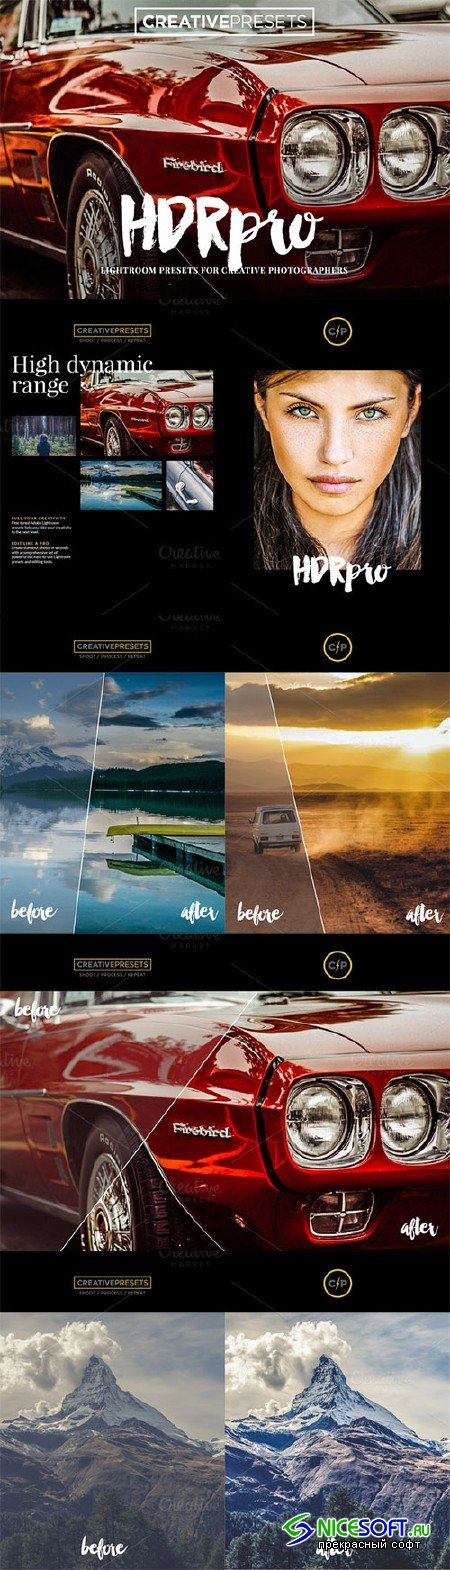 10 HDR PRO - Lightroom Presets - Creativemarket 327185